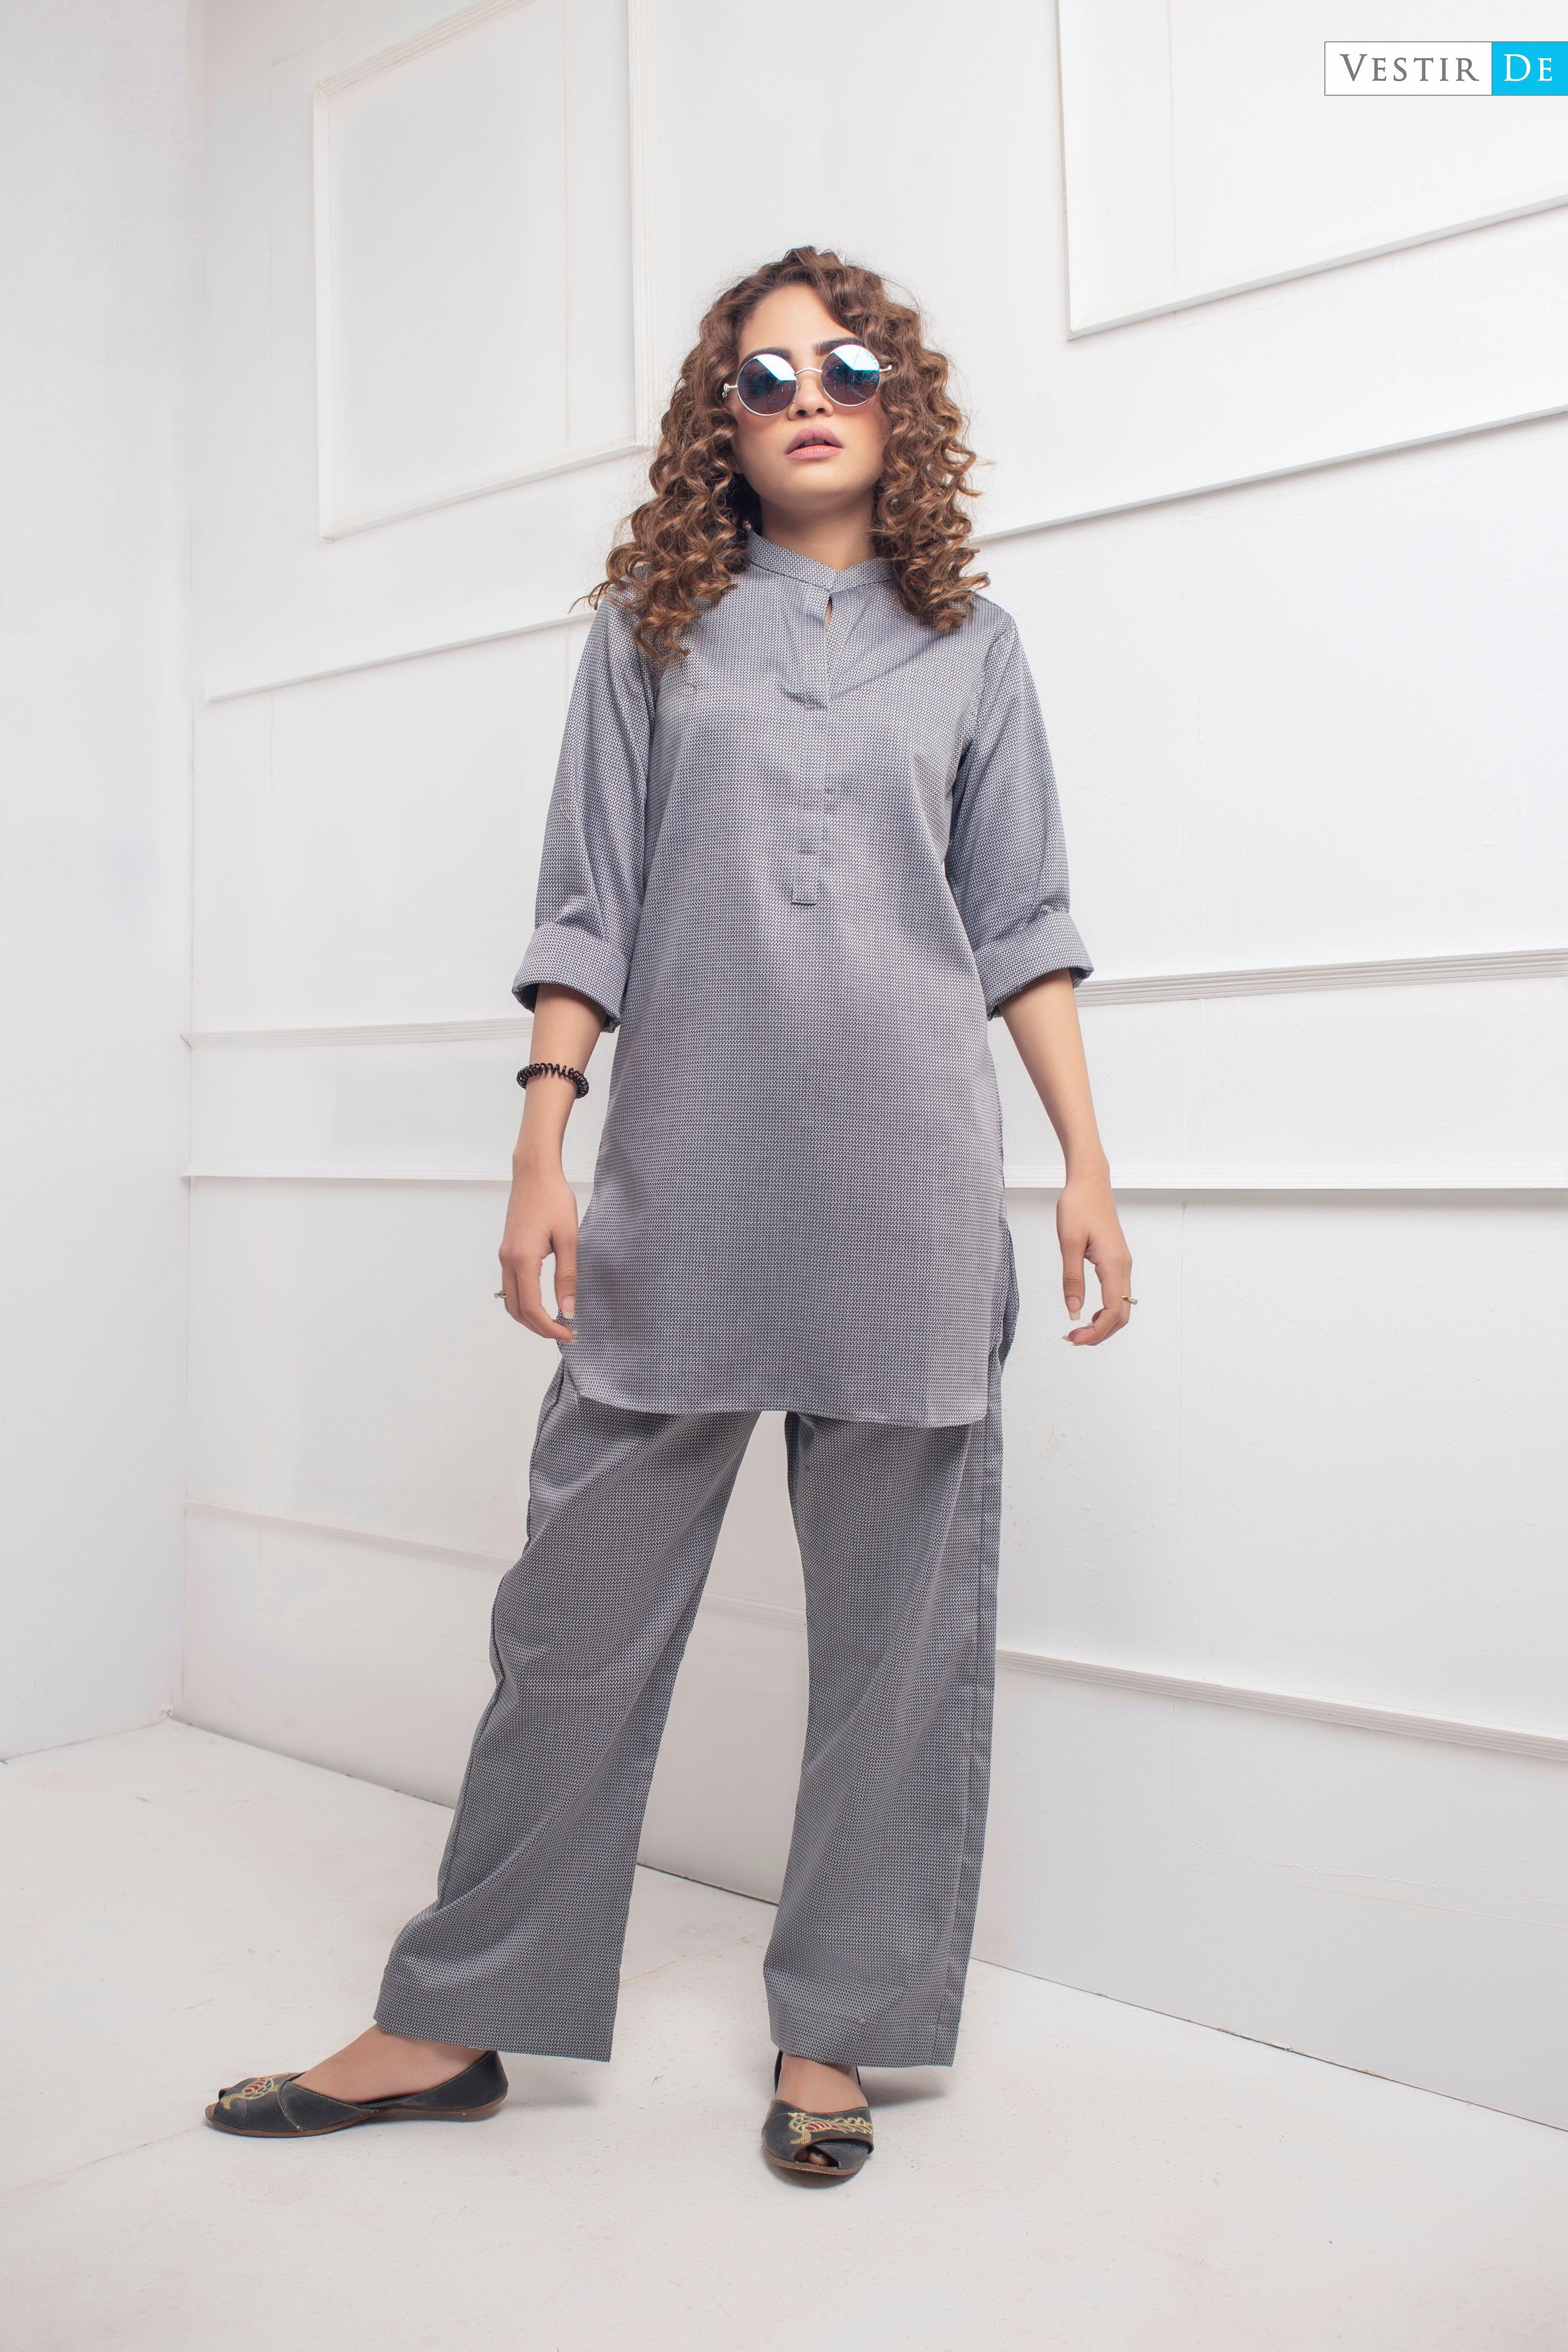 Grey Textured Shirt With Trouser - Vestir De